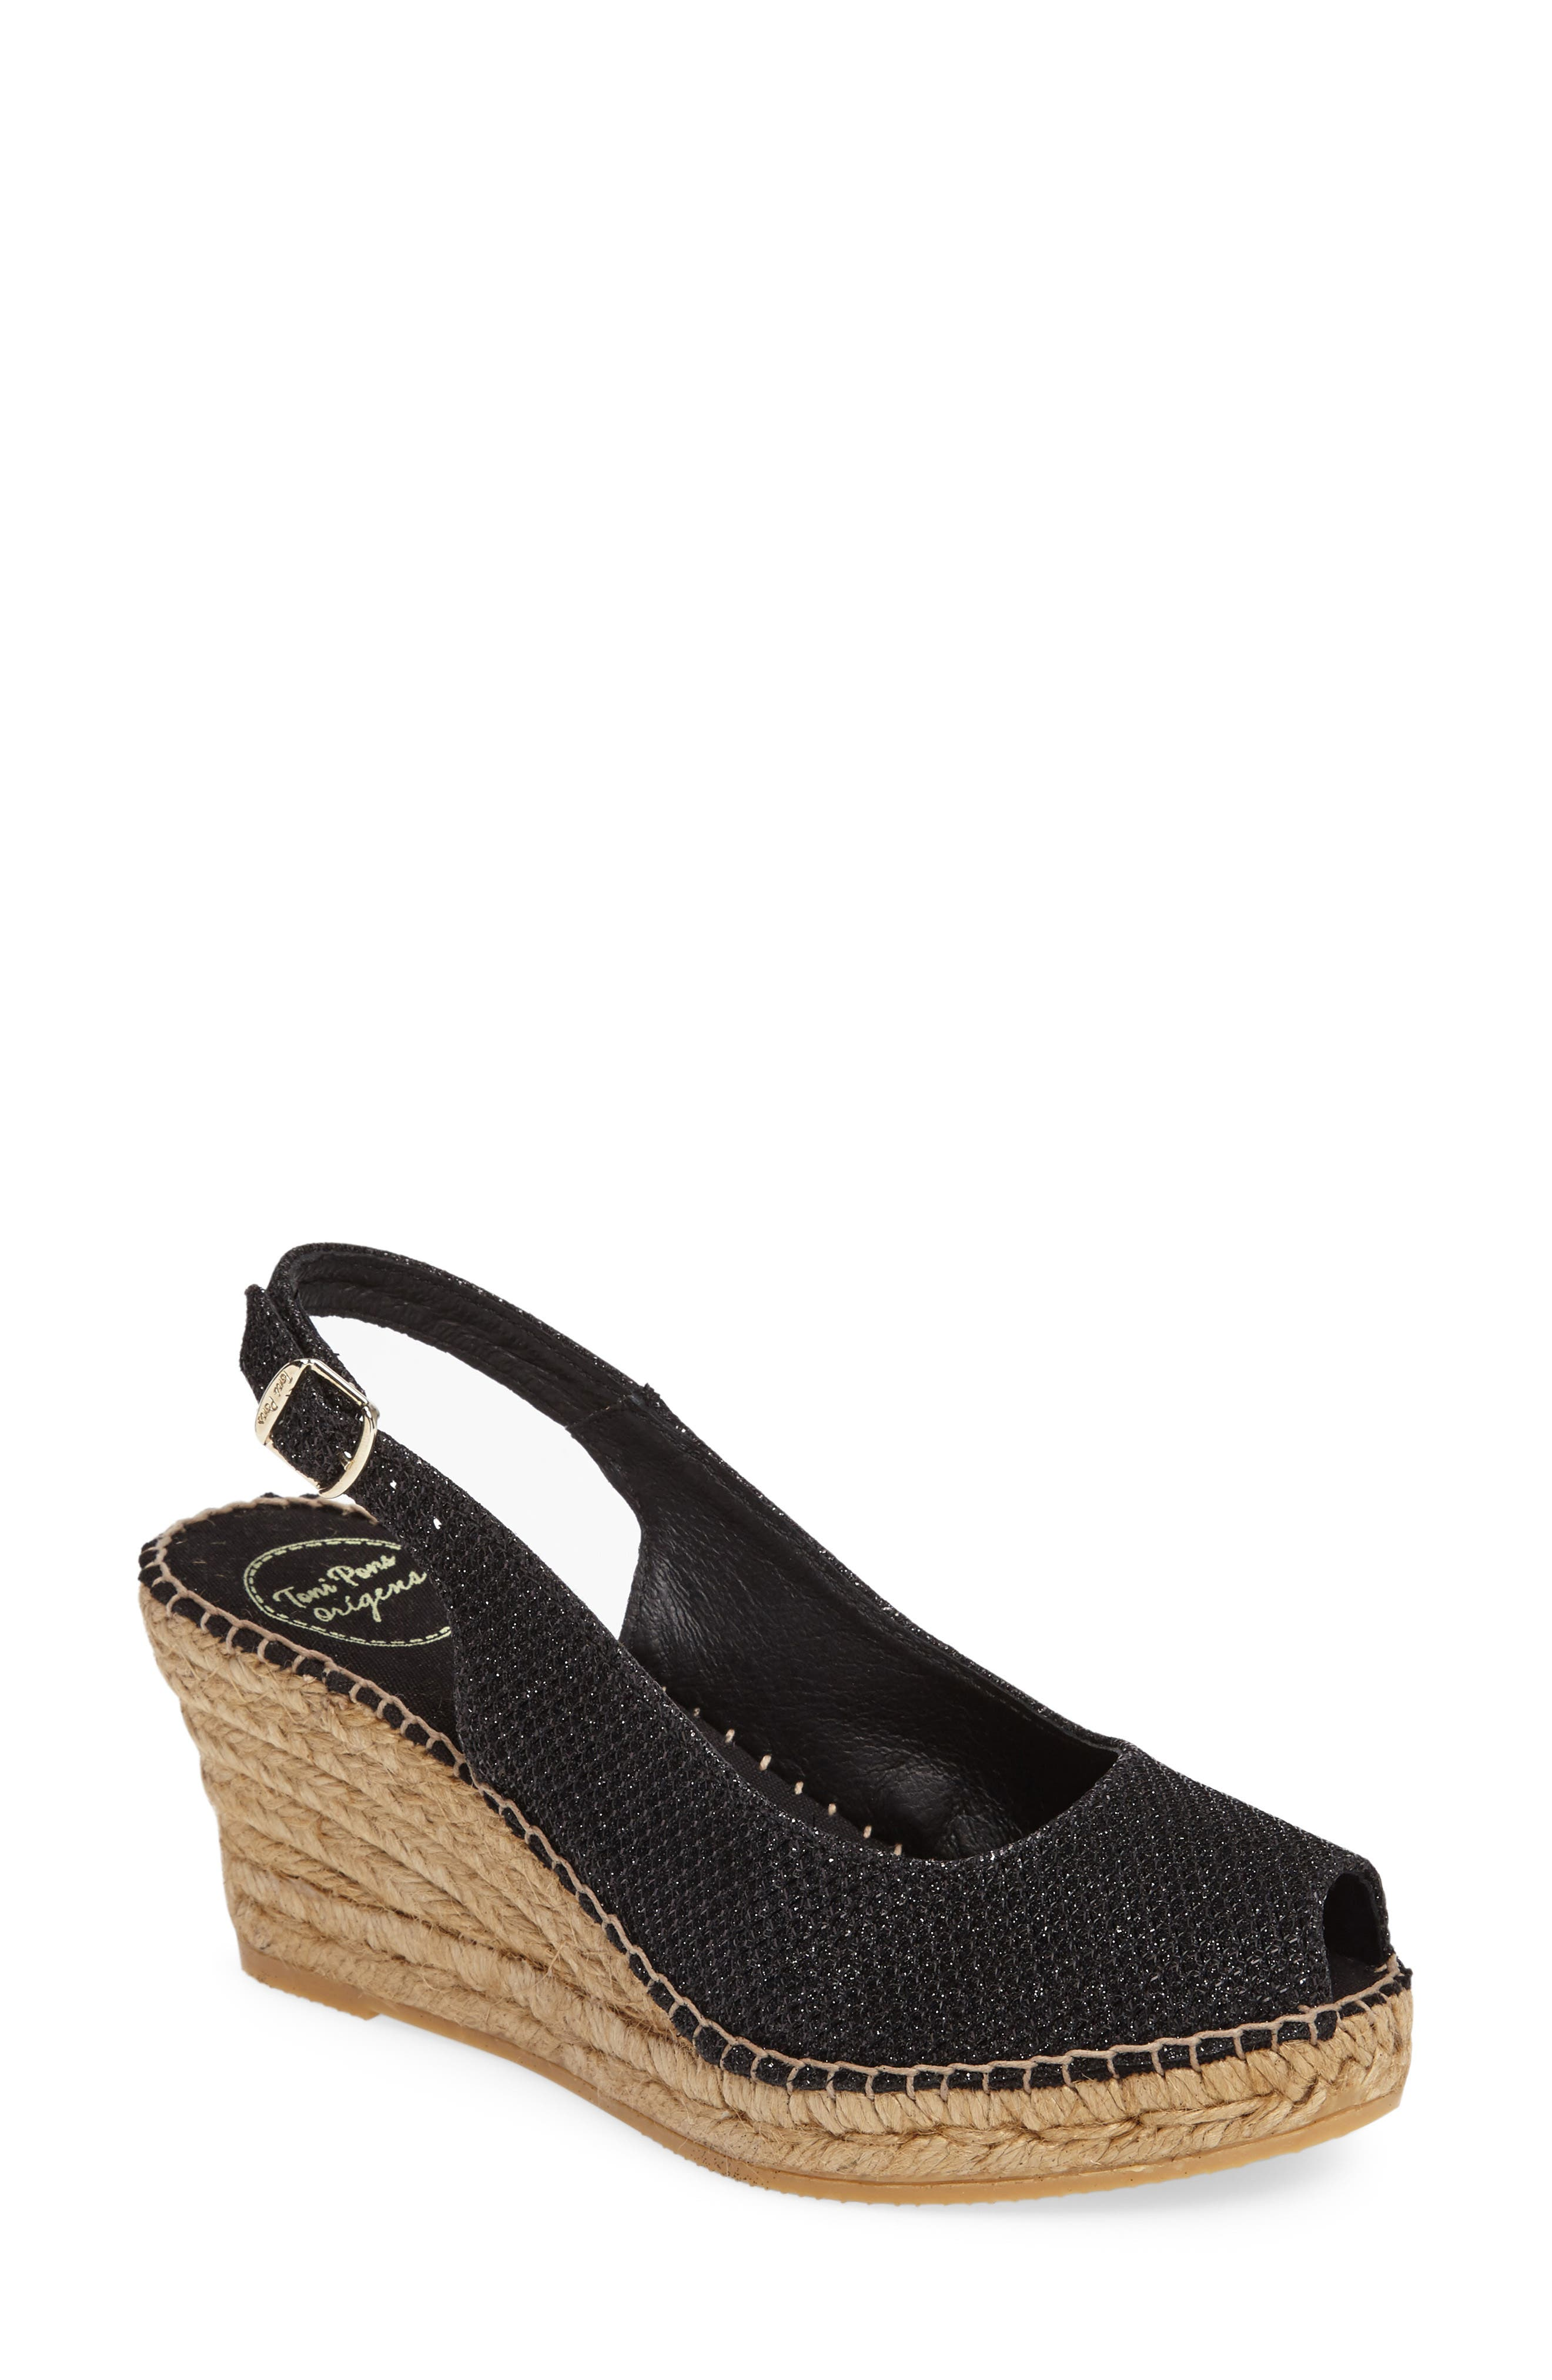 Toni Pons Calafell Slingback Wedge Espadrille (Women)